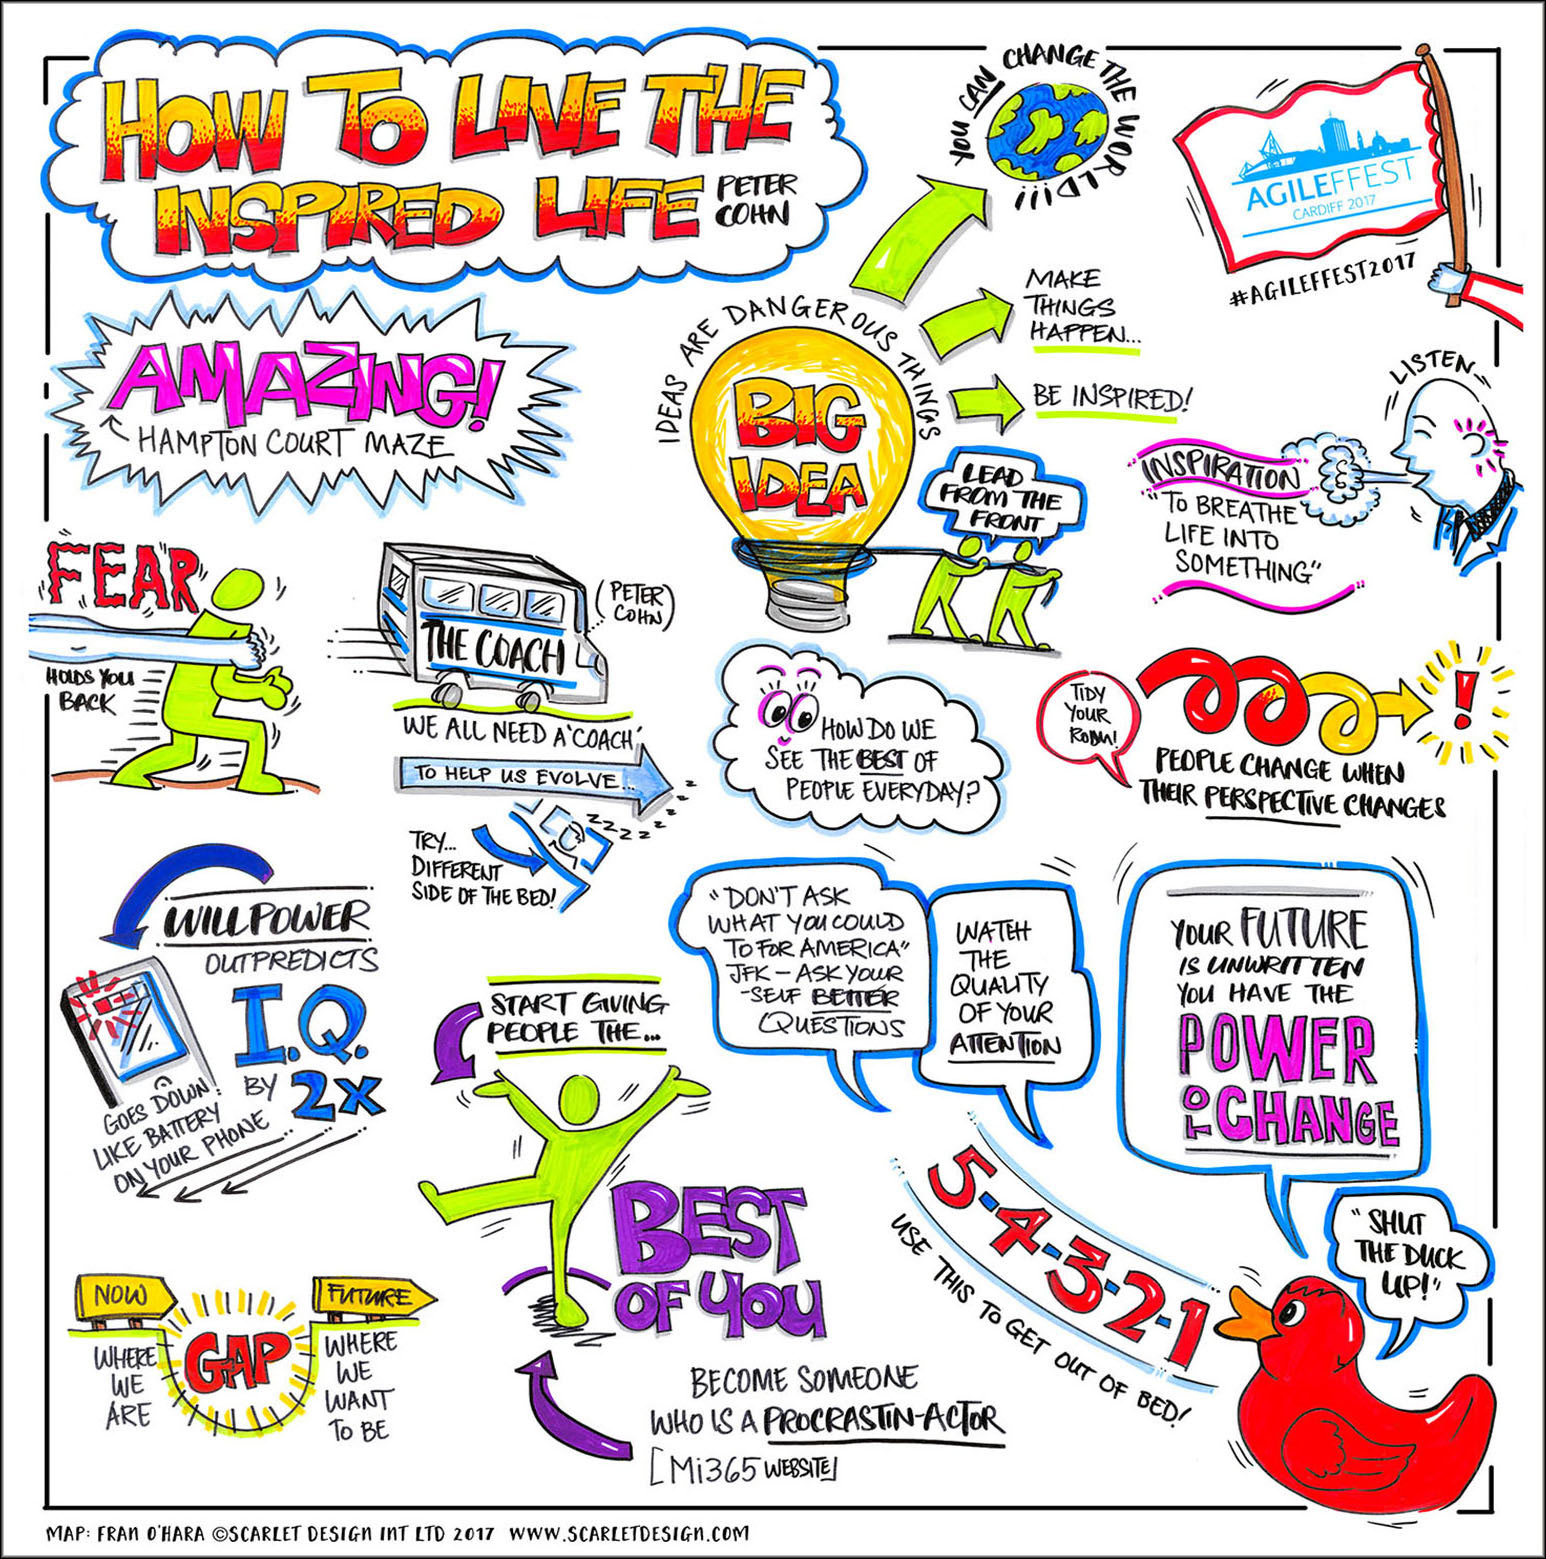 agileffest how to live the inspired life